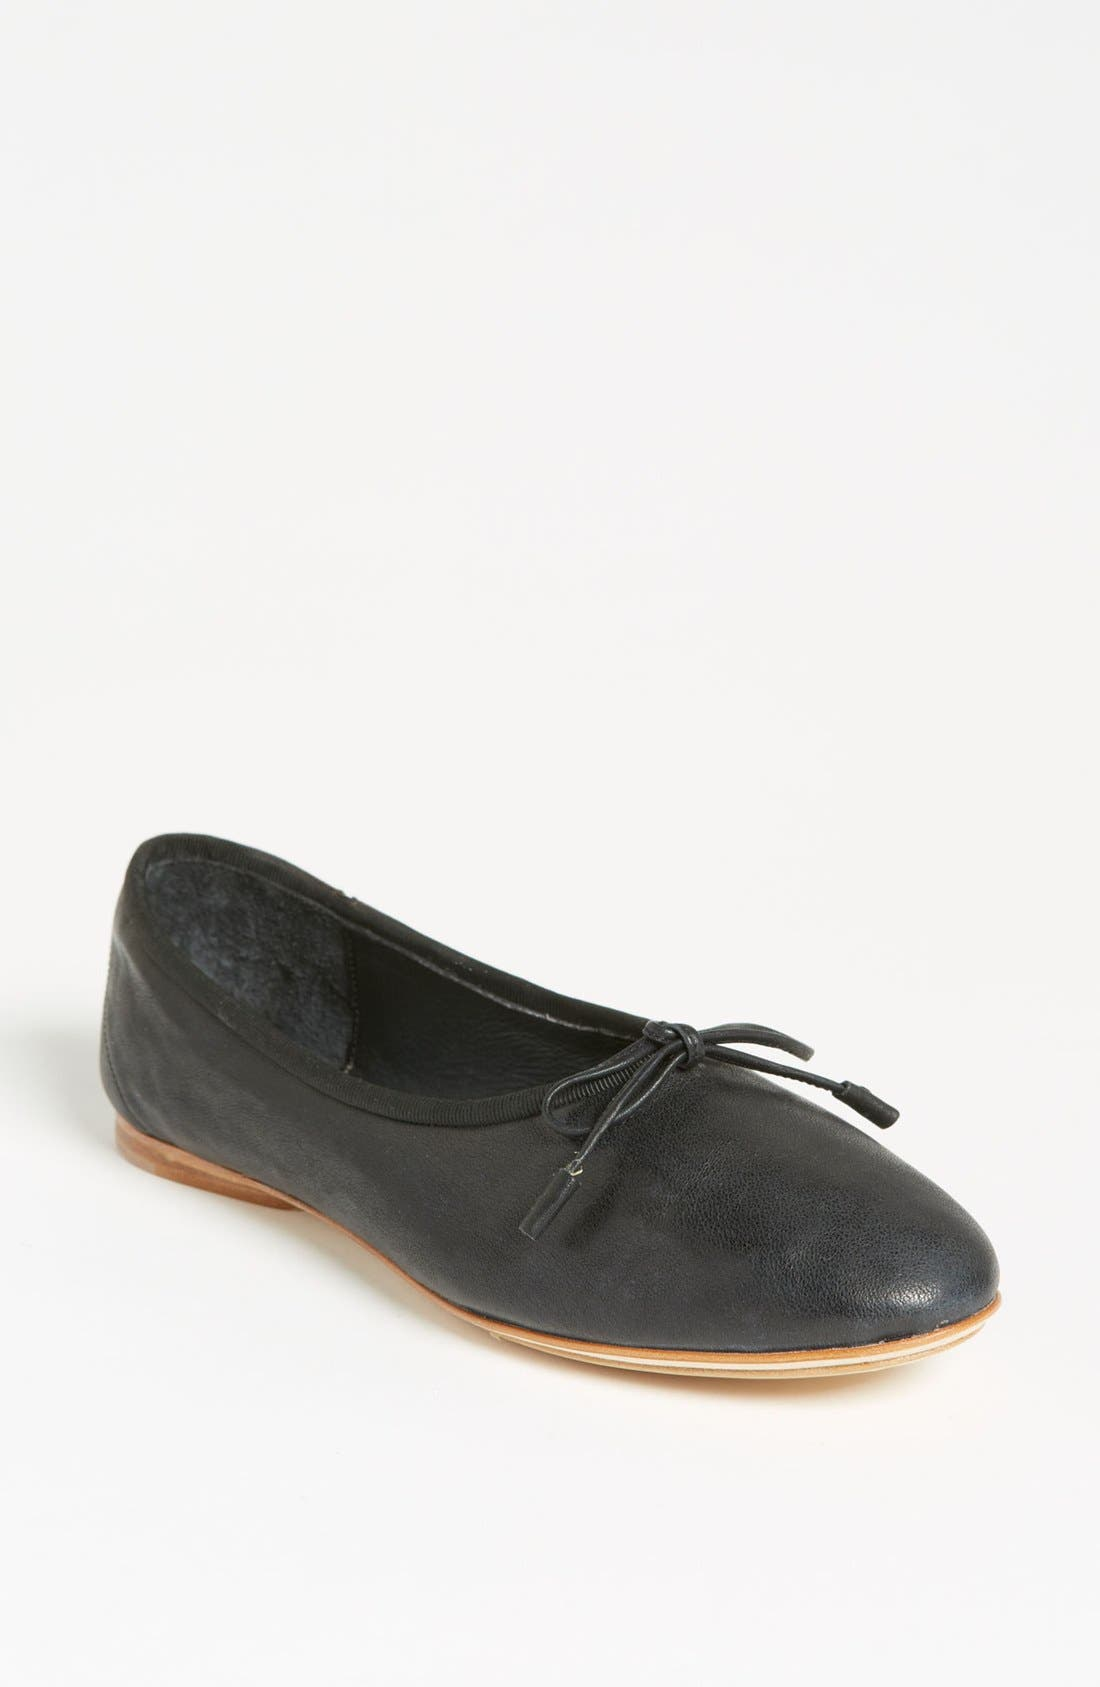 Main Image - rag & bone 'Windsor' Skimmer Flat